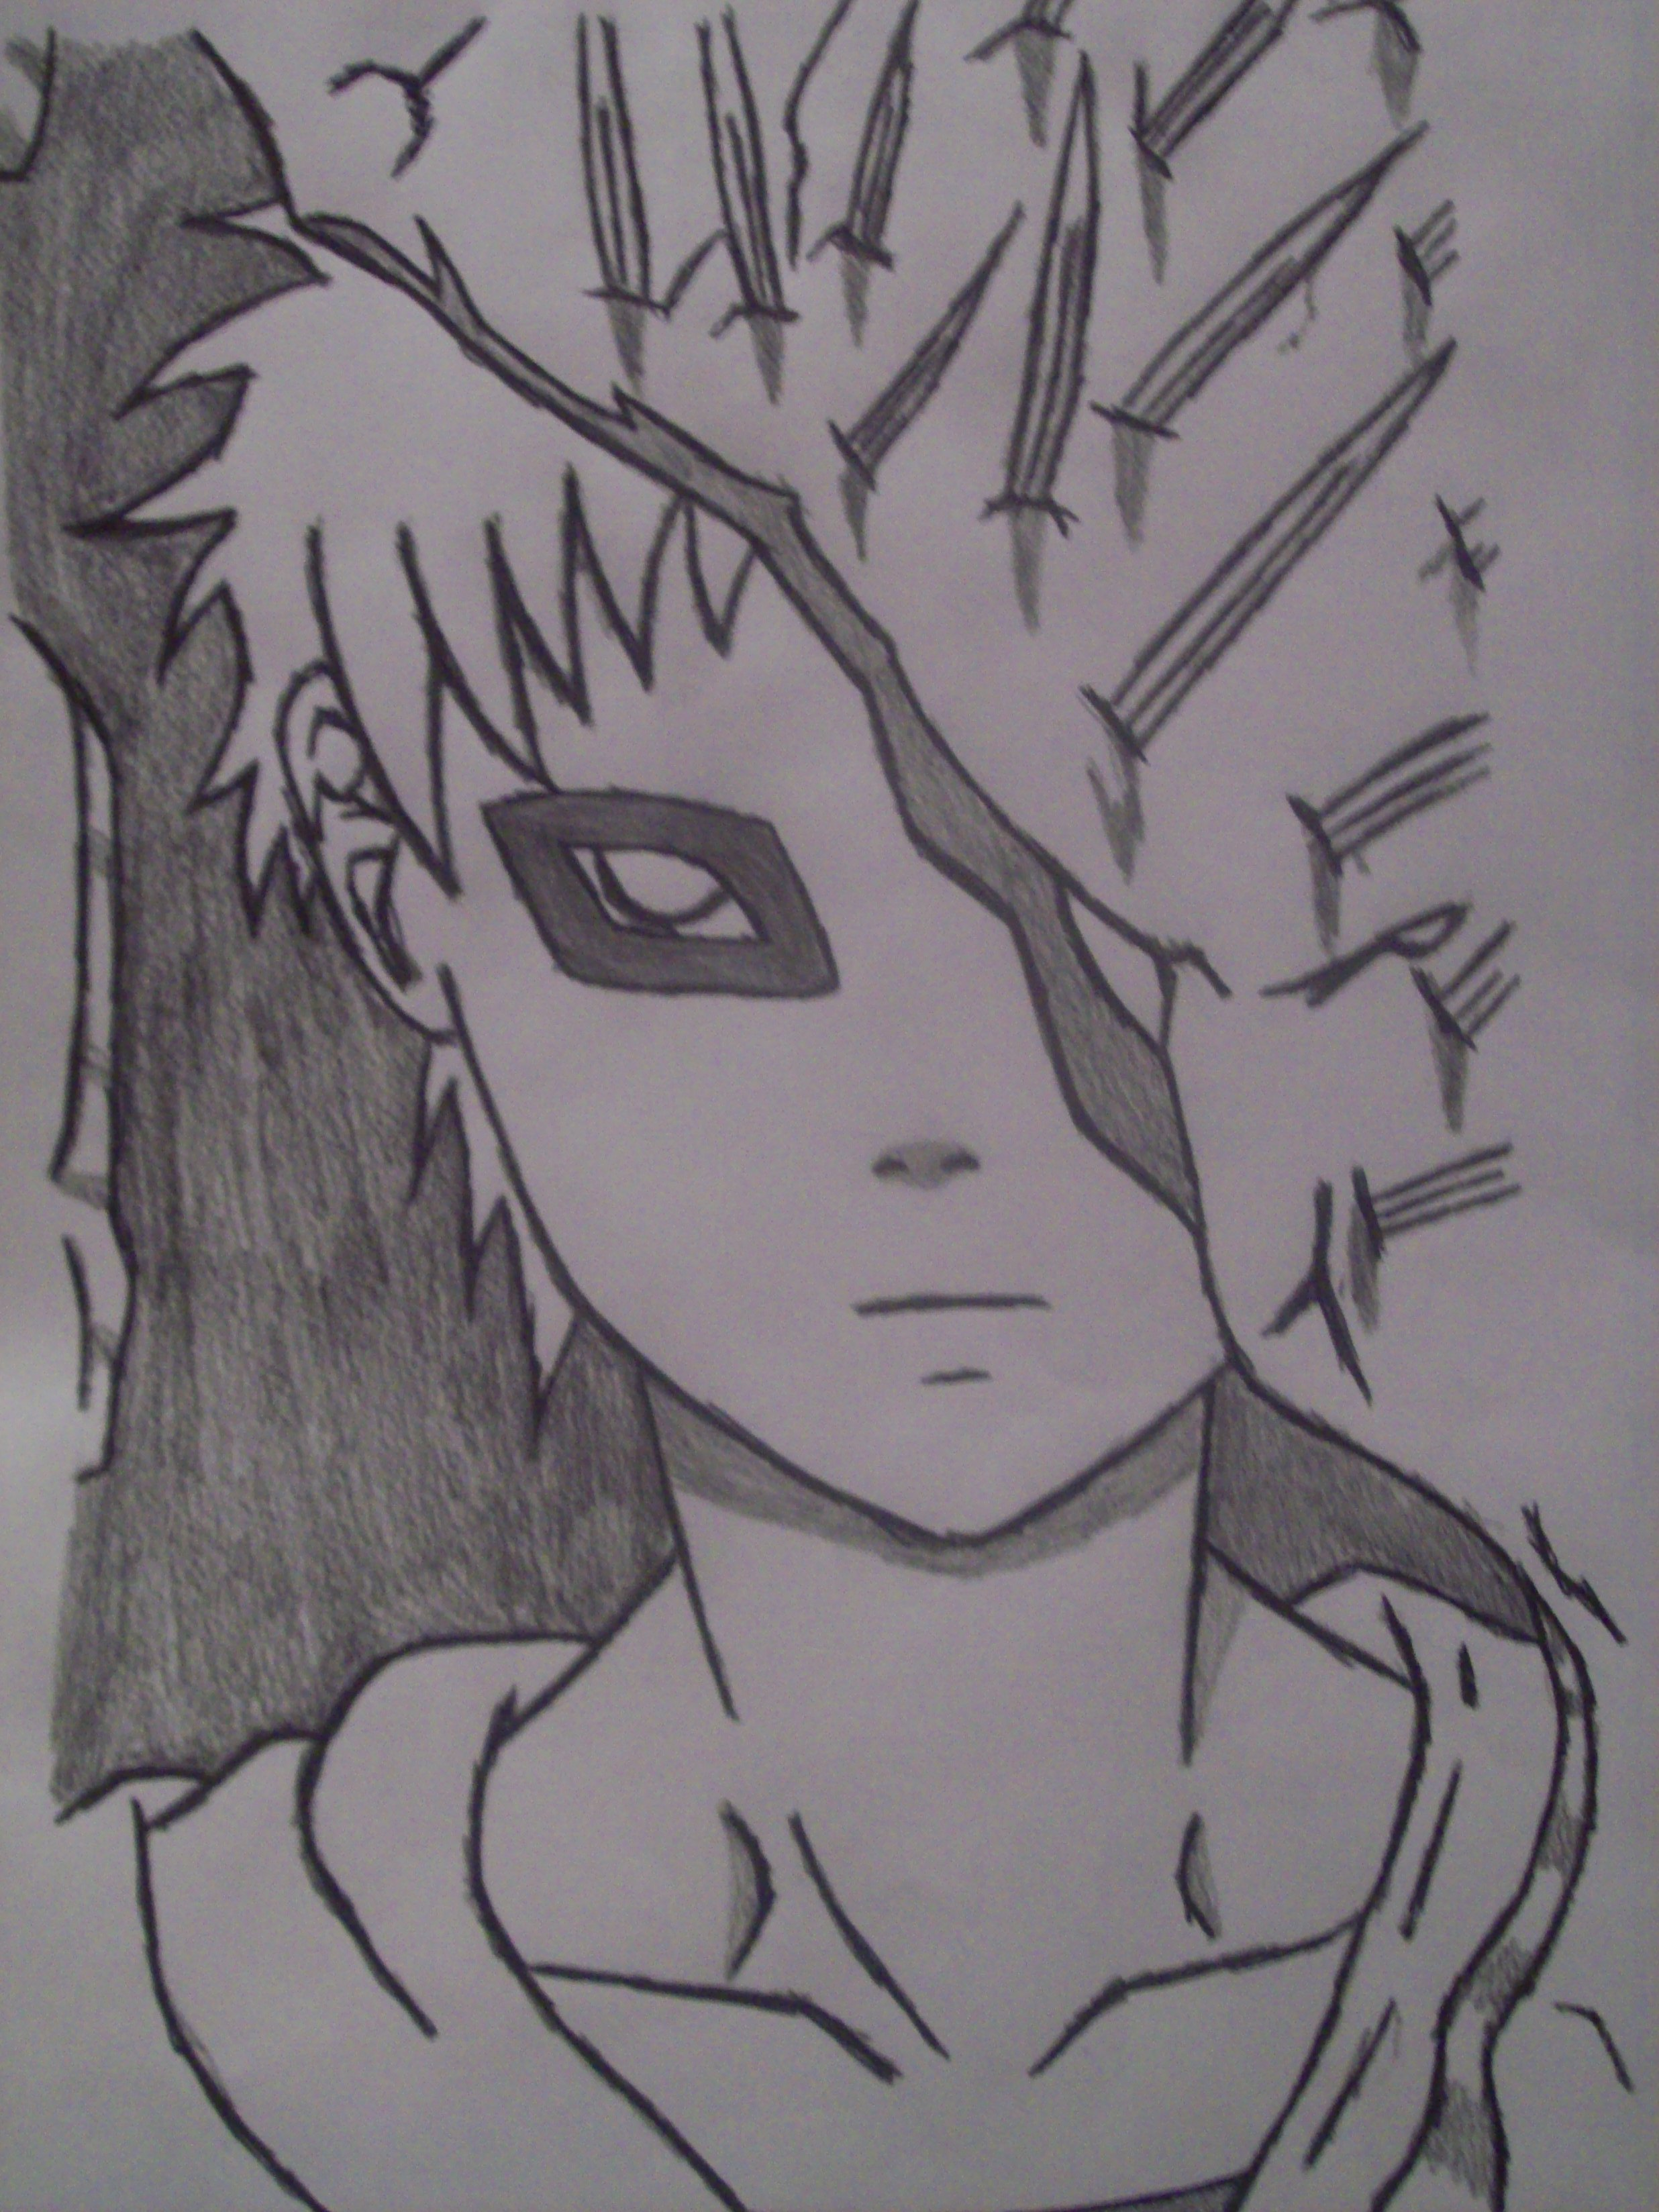 Naruto which drawing do you like best